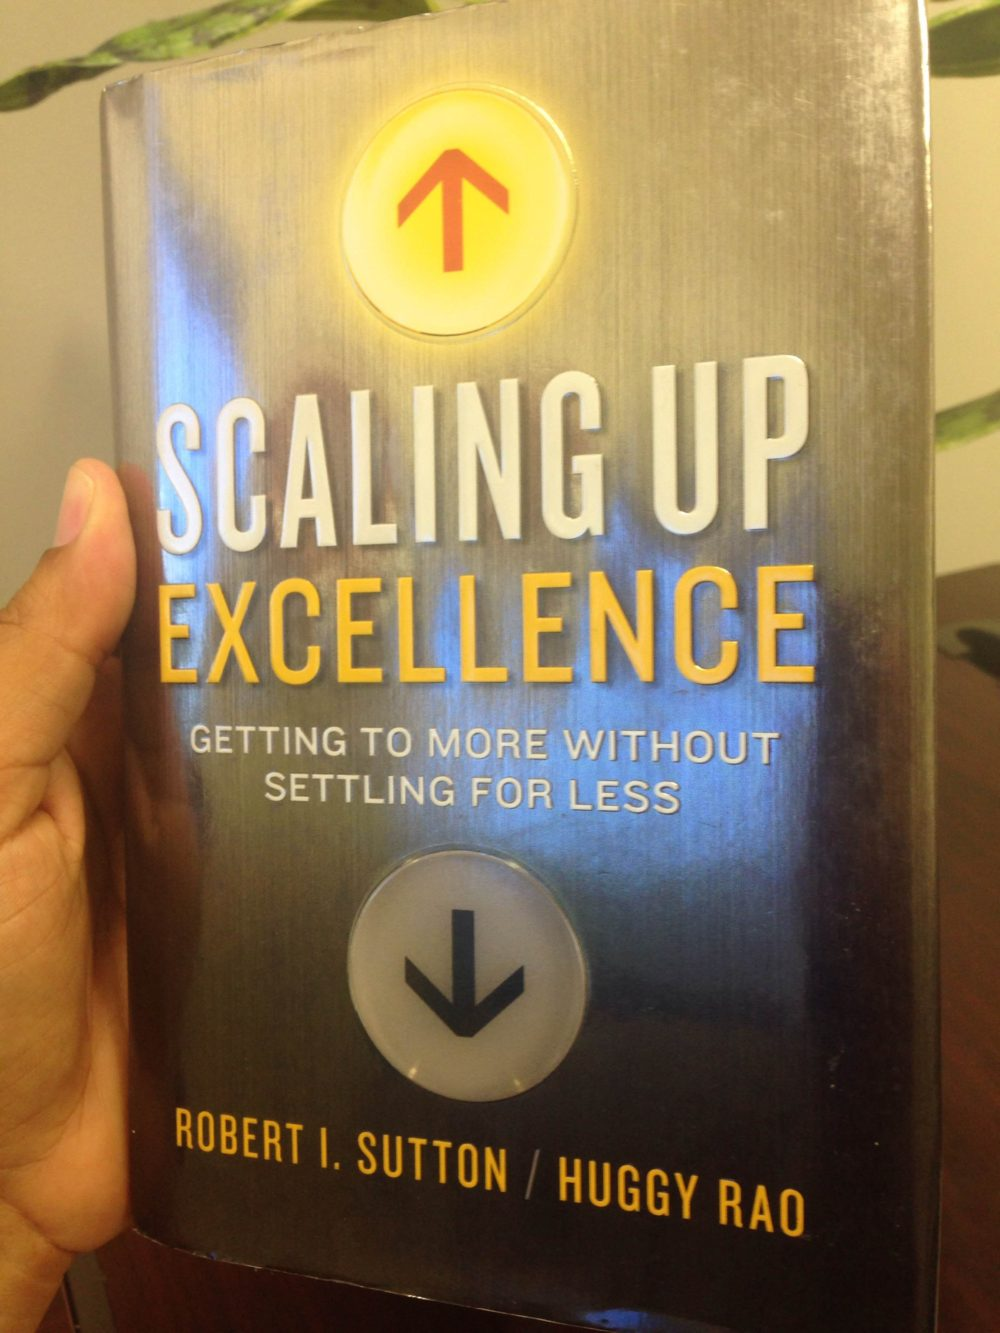 Scaling Up Excellence by Robert Sutton and Huggy Rao